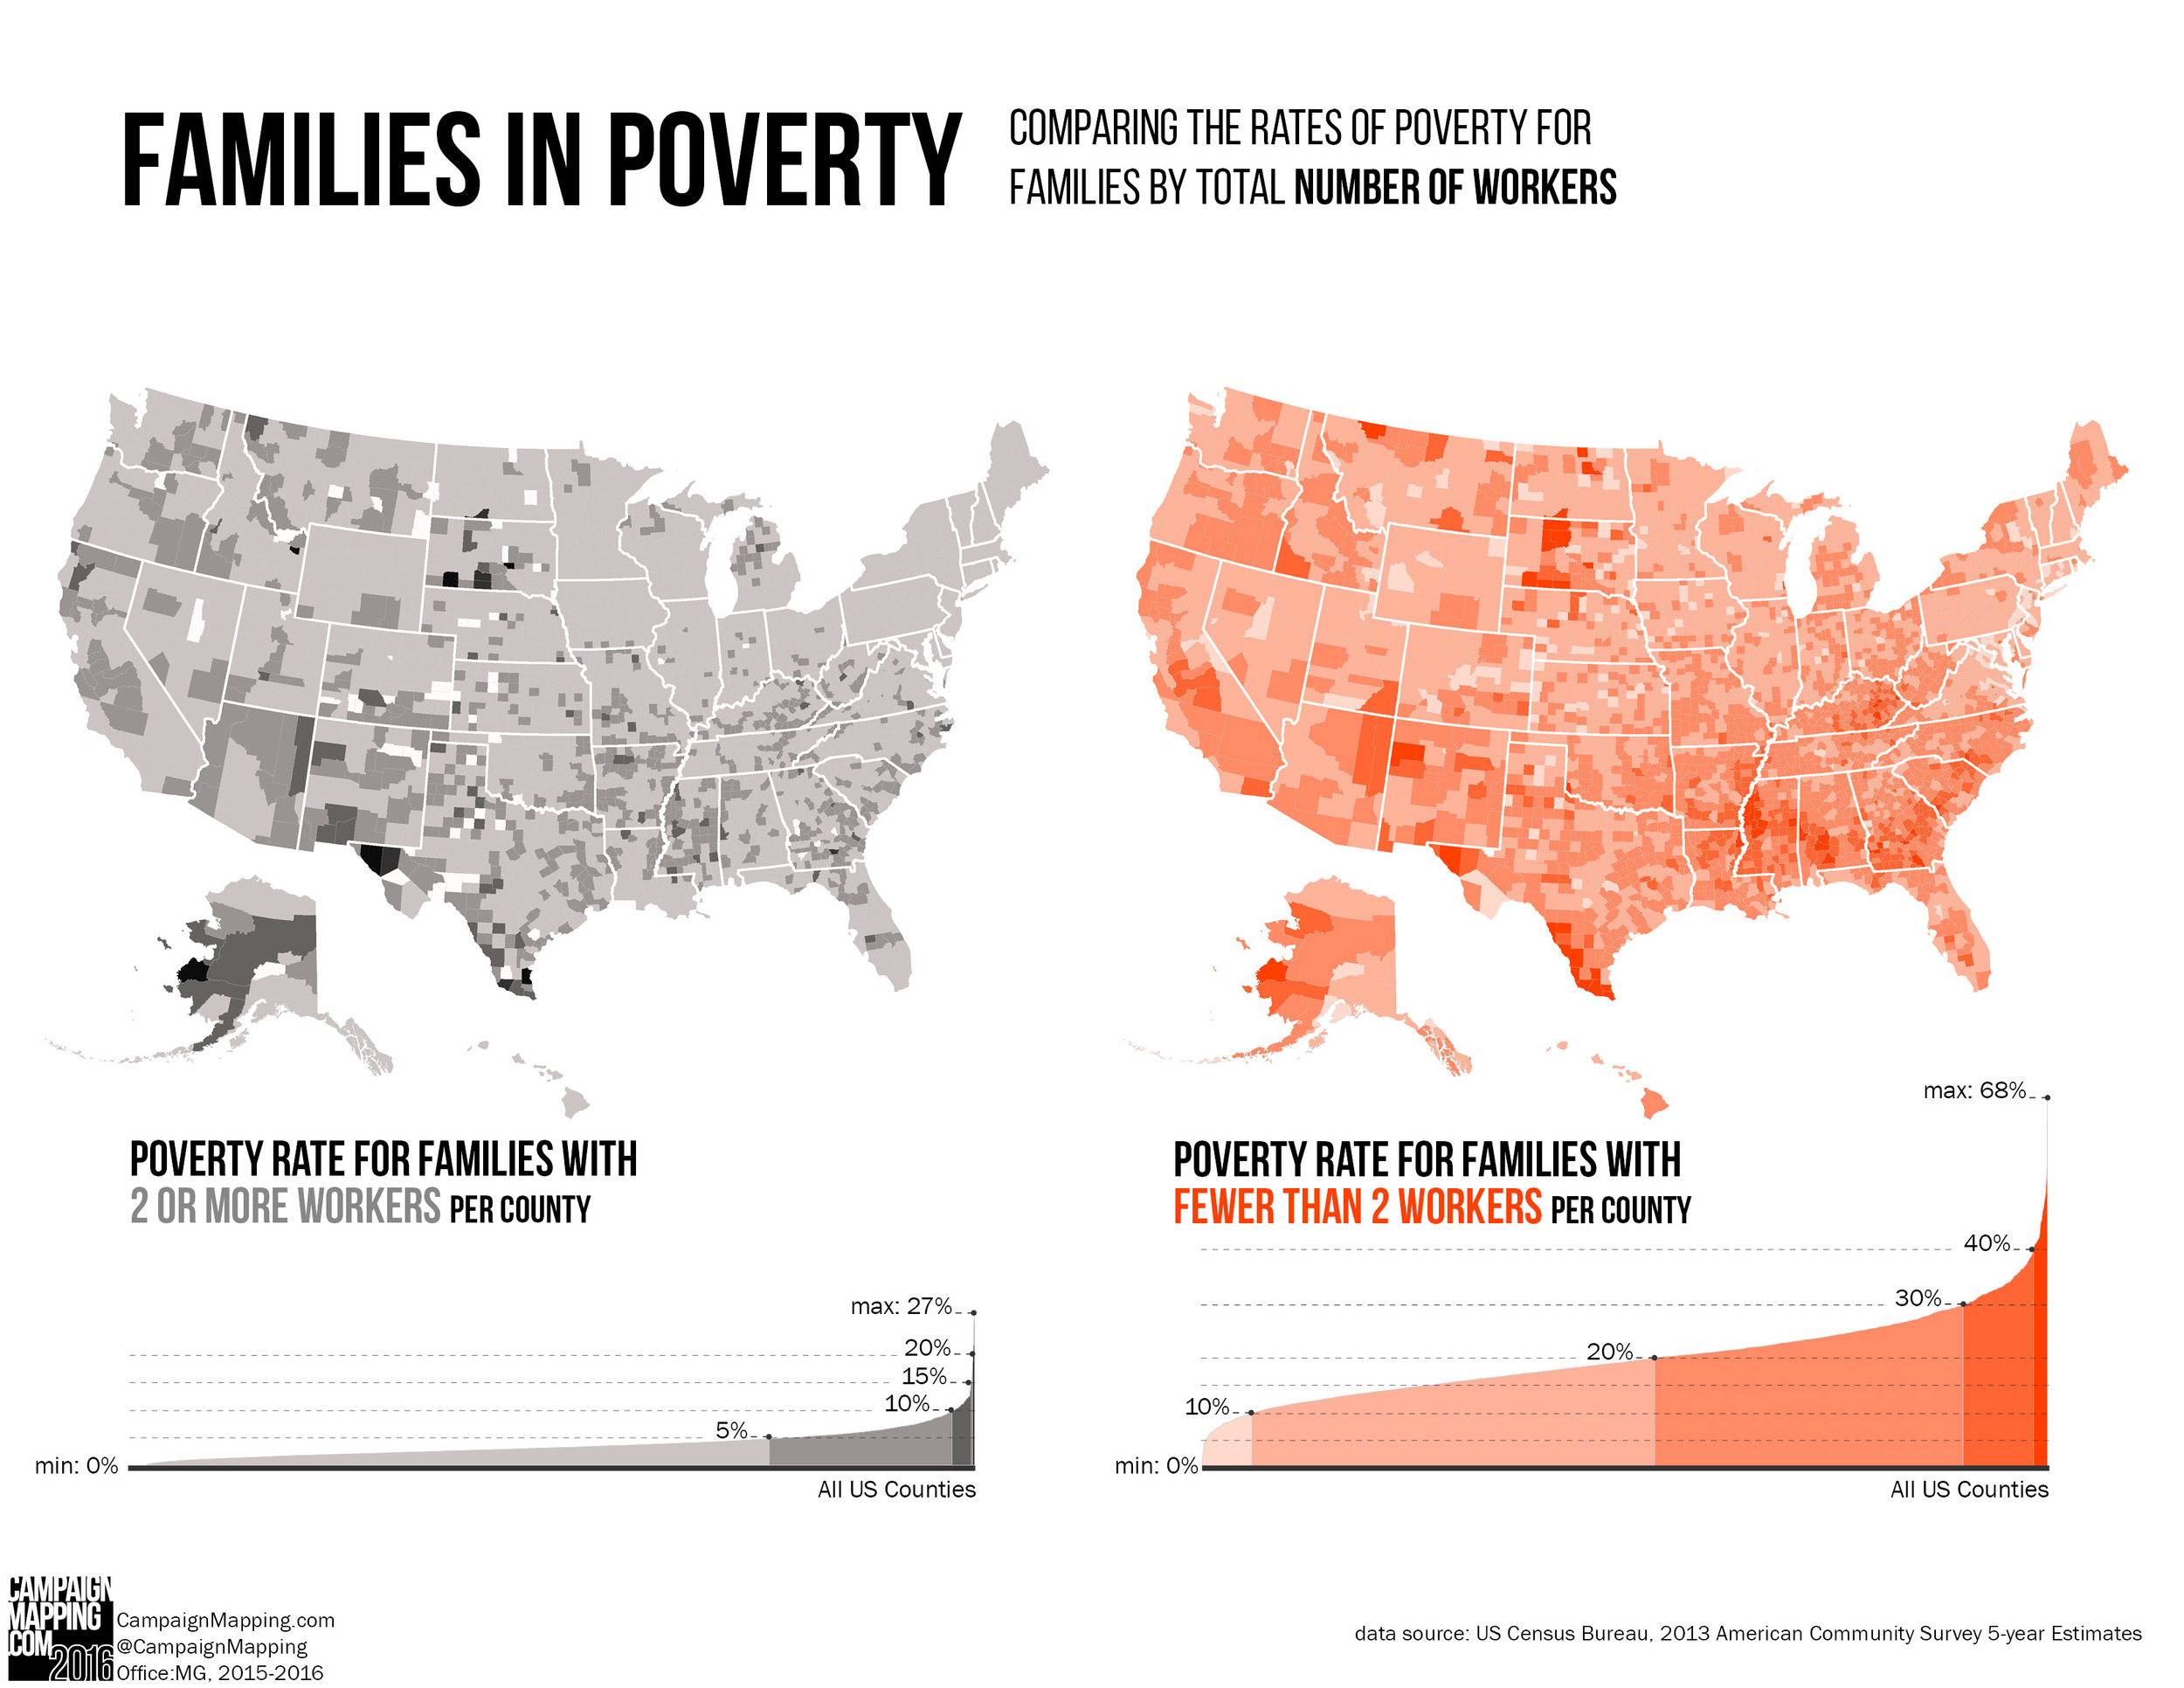 FamiliesInPoverty_Workers_Compare.jpg